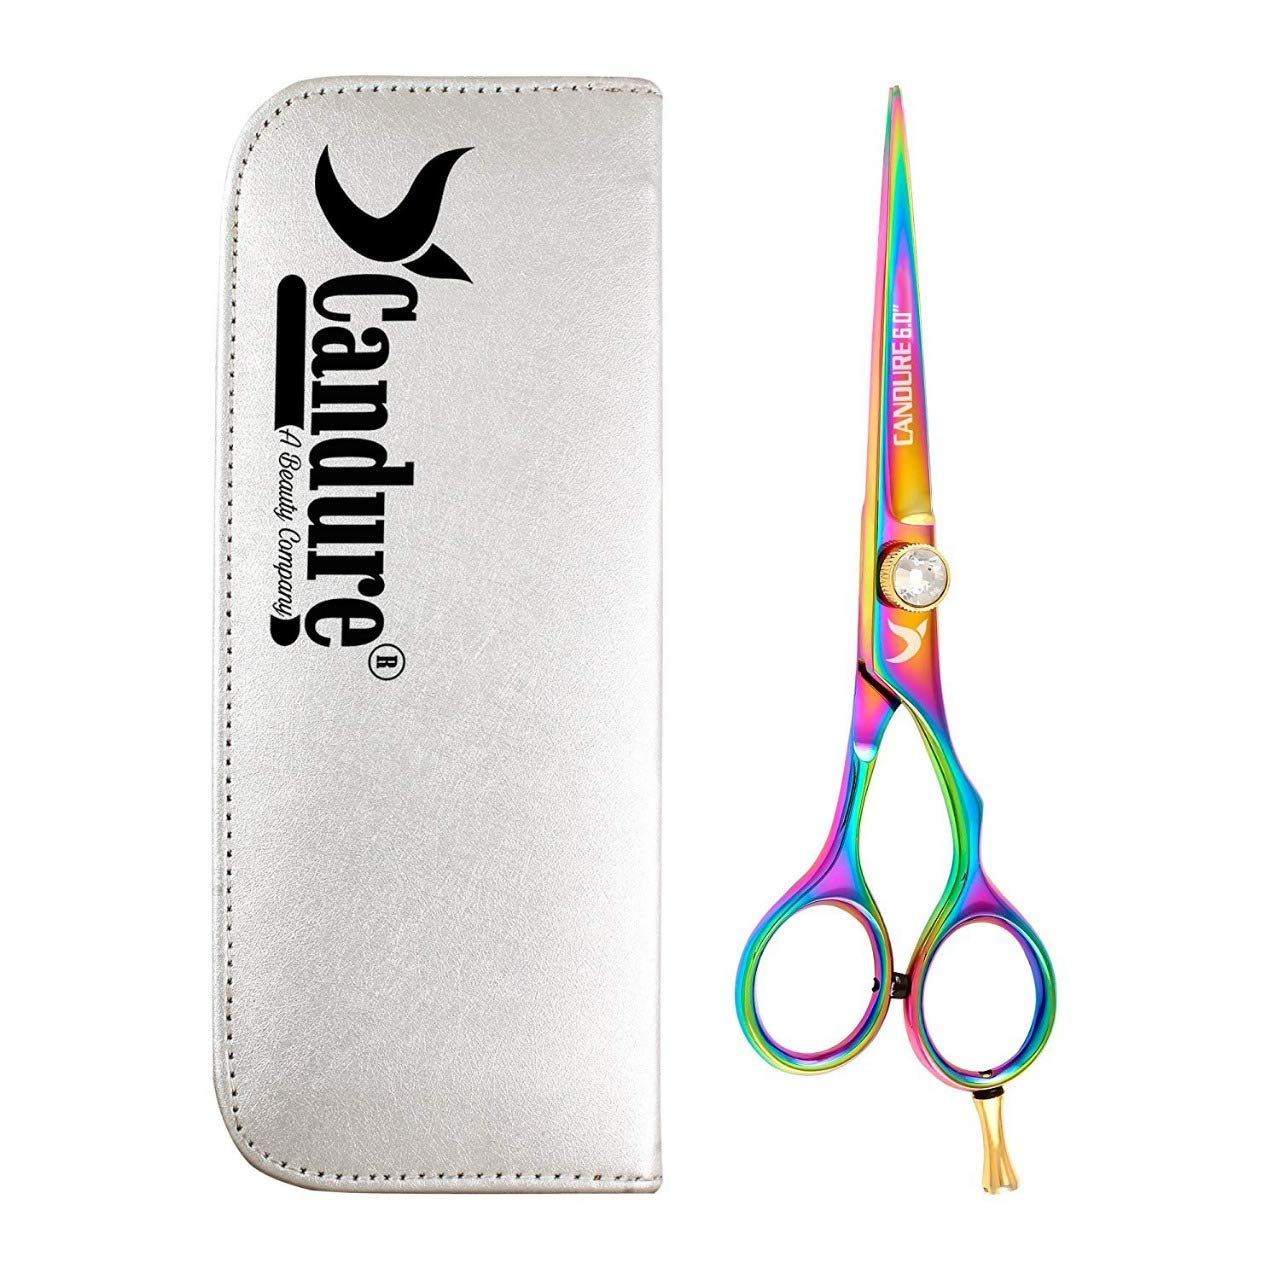 Hairdressing Scissors - Hair cutting Scissor - Stainless Steel - Barber Salon Scissors + A Beautiful Presentation Case (Polish (6)) CANDURE®